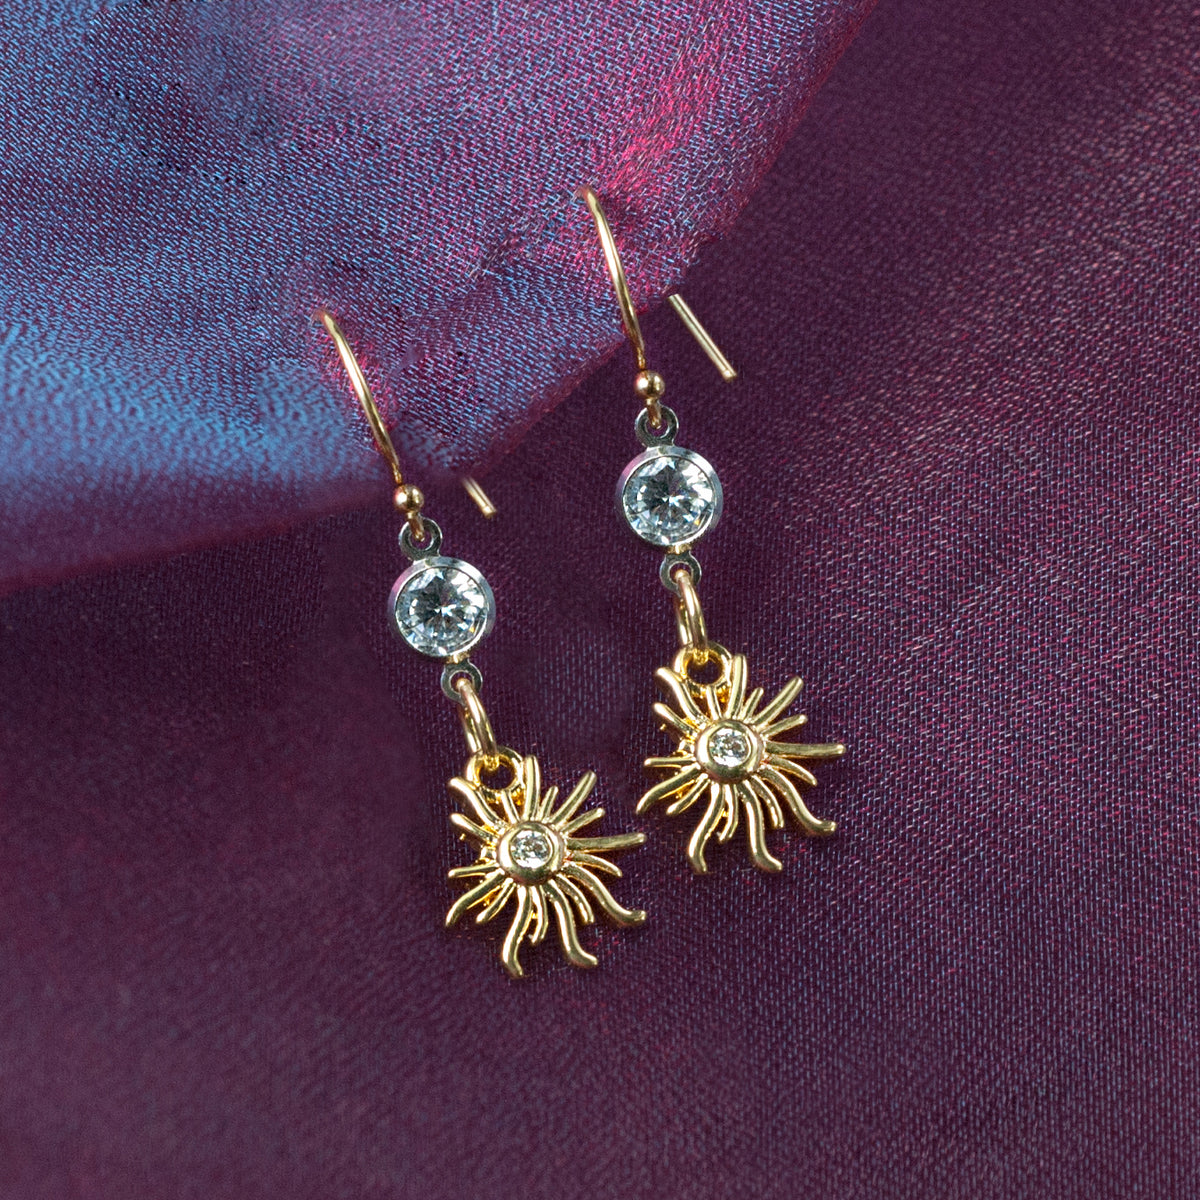 Tiny Sunshine Earrings E1507 - Sweet Romance Wholesale